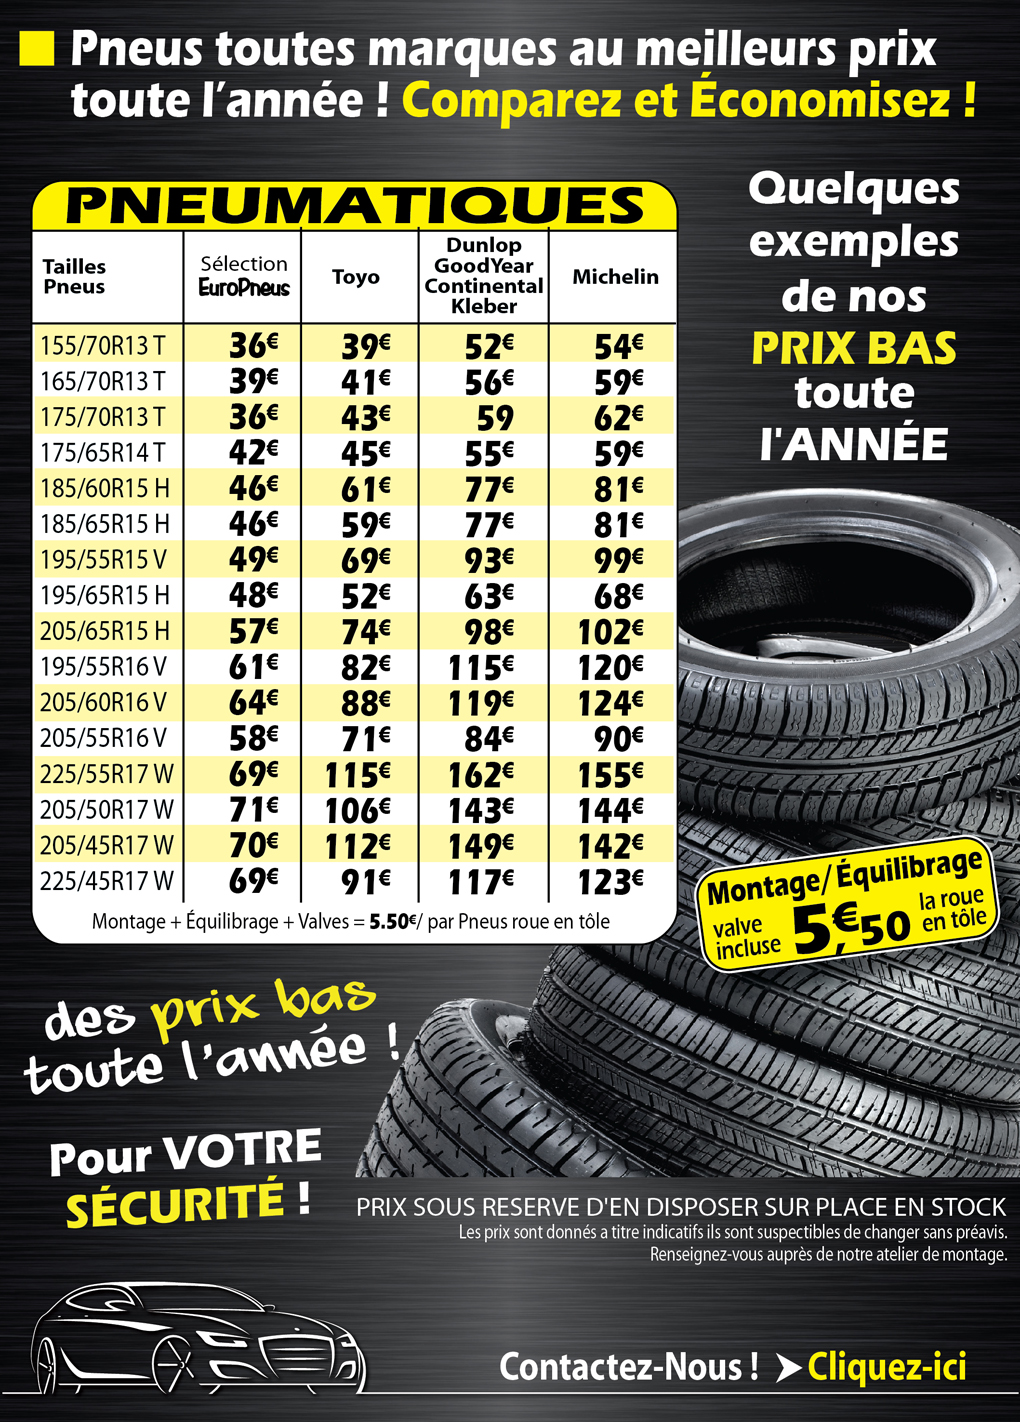 europneus romans sur is re 26100 dr me votre ForGarage Euro Pneu Romans Sur Isere